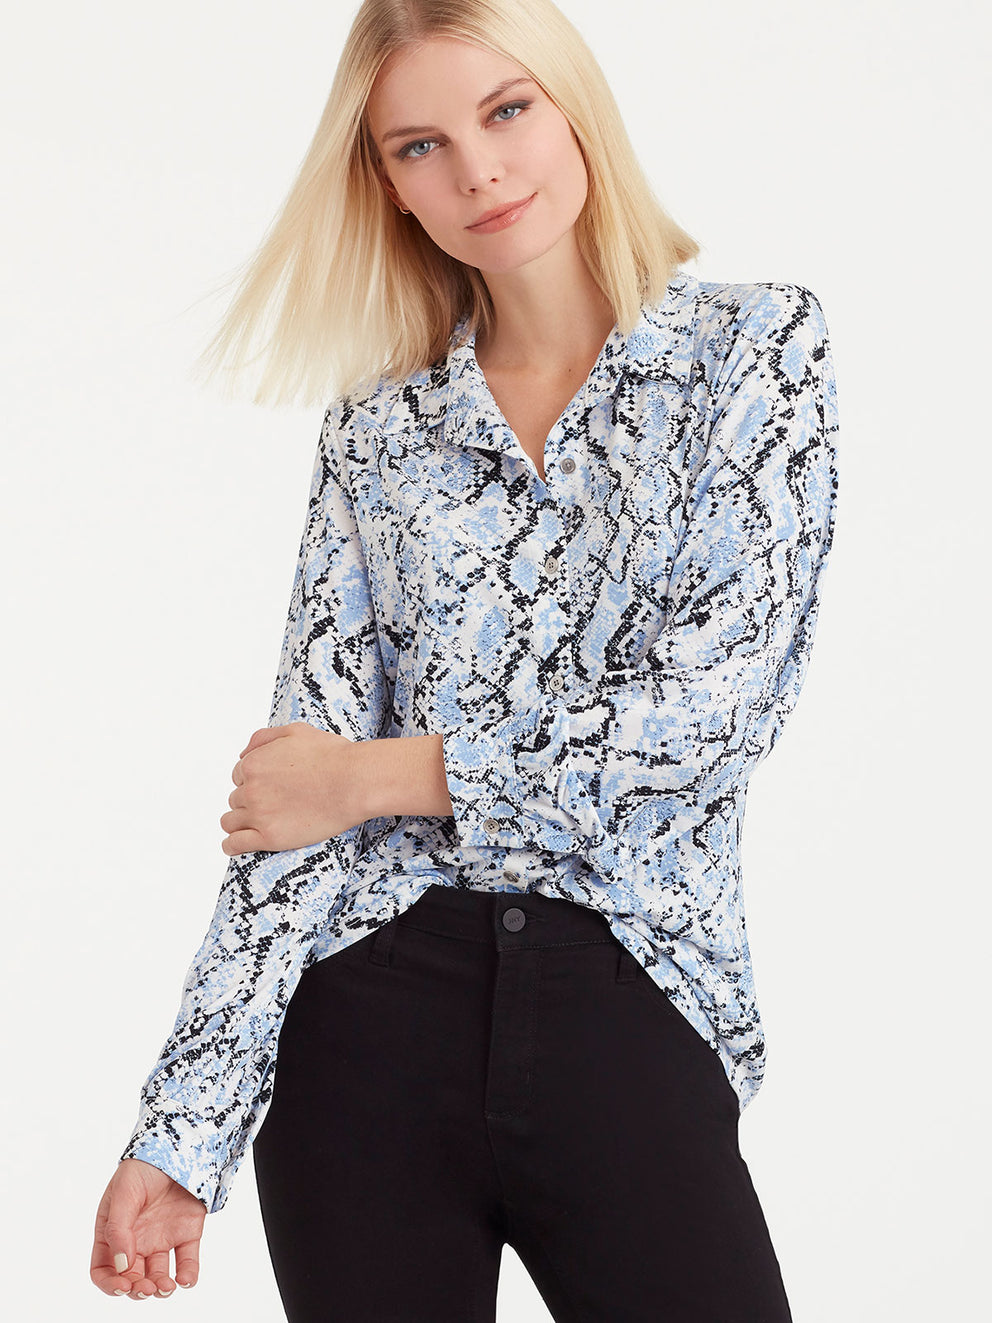 The Jones New York Button-Front Knit Top in color Blue Snake Print - Image Position 1